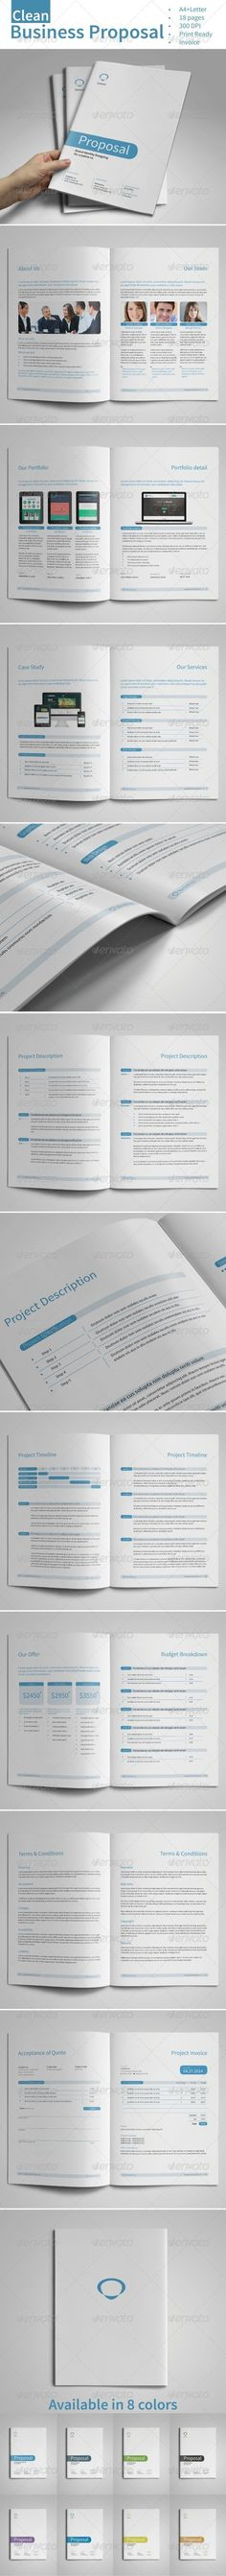 Clean \ Professional Proposal Template with include Invoice - event proposal template